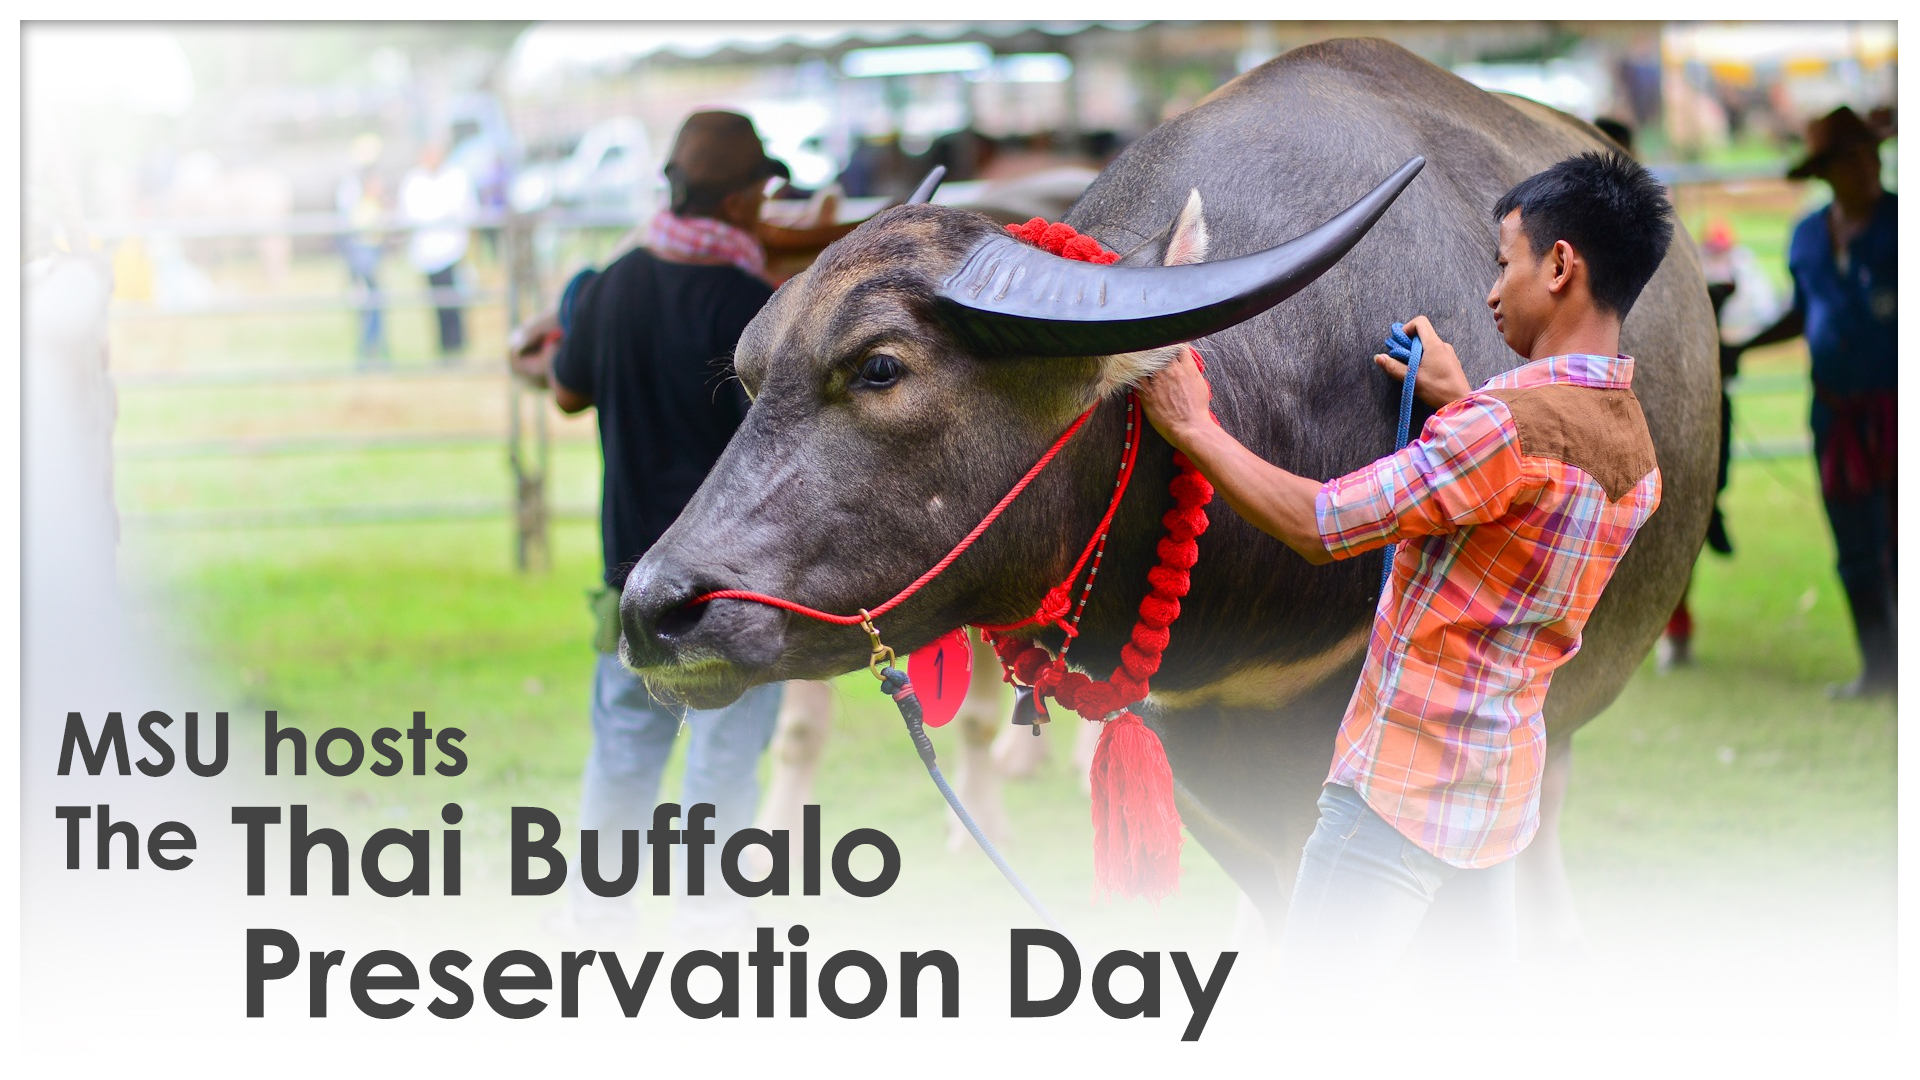 MSU hosts the Thai Buffalo Preservation Day